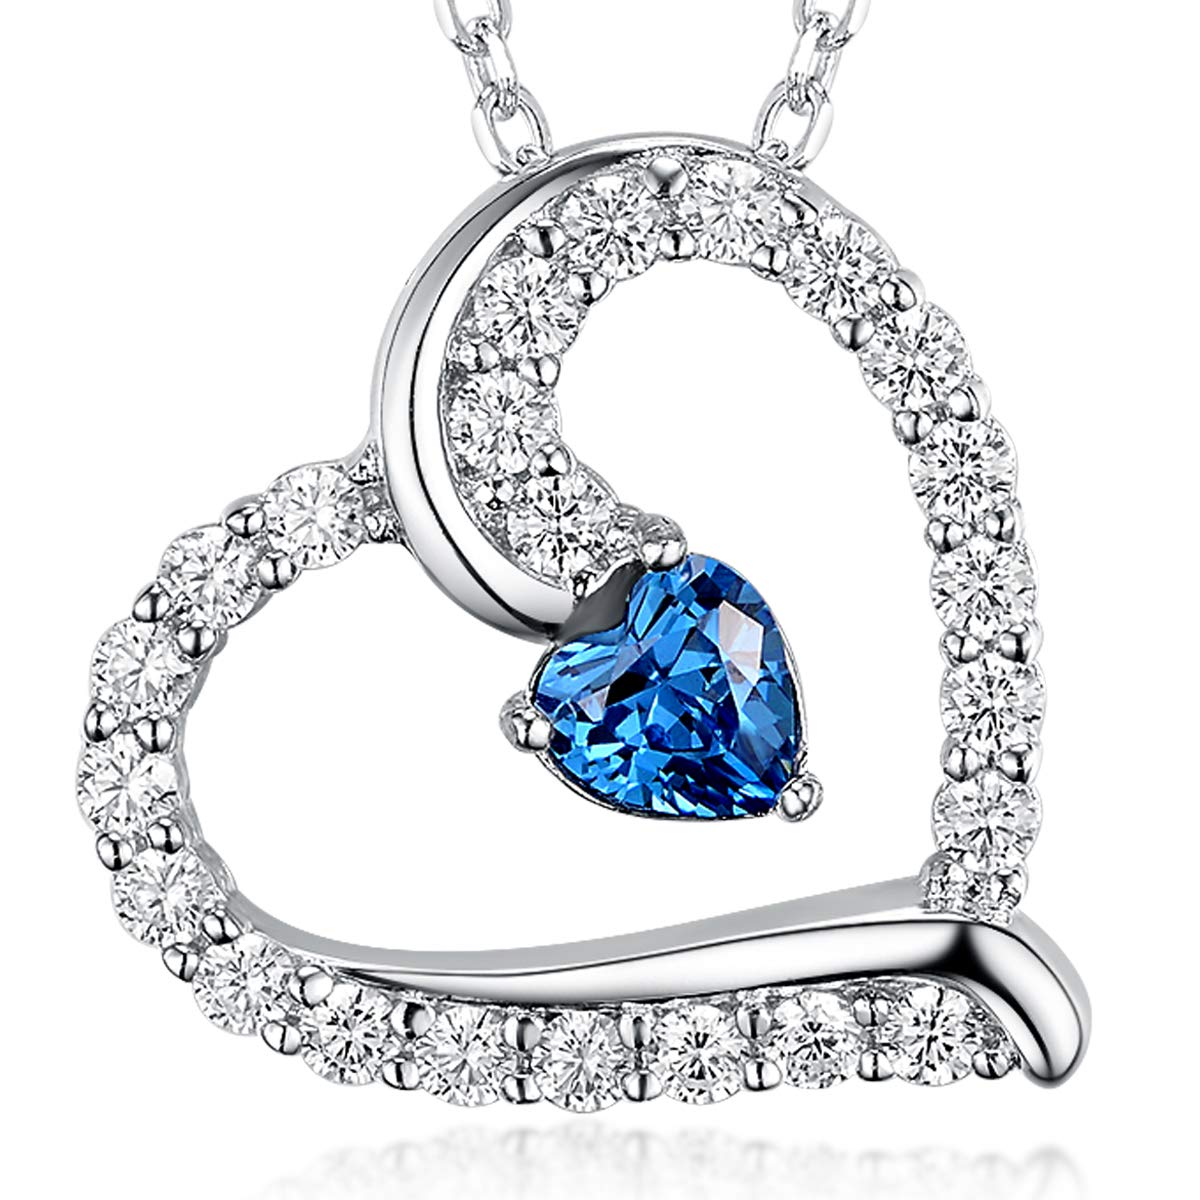 Re Besta Love Heart Pendant Necklace Created Blue Sapphire September Birthstone Fine Jewelry Birthday for Women Her Girlfriend Daughter Sterling Silver 18''+2'' Chain